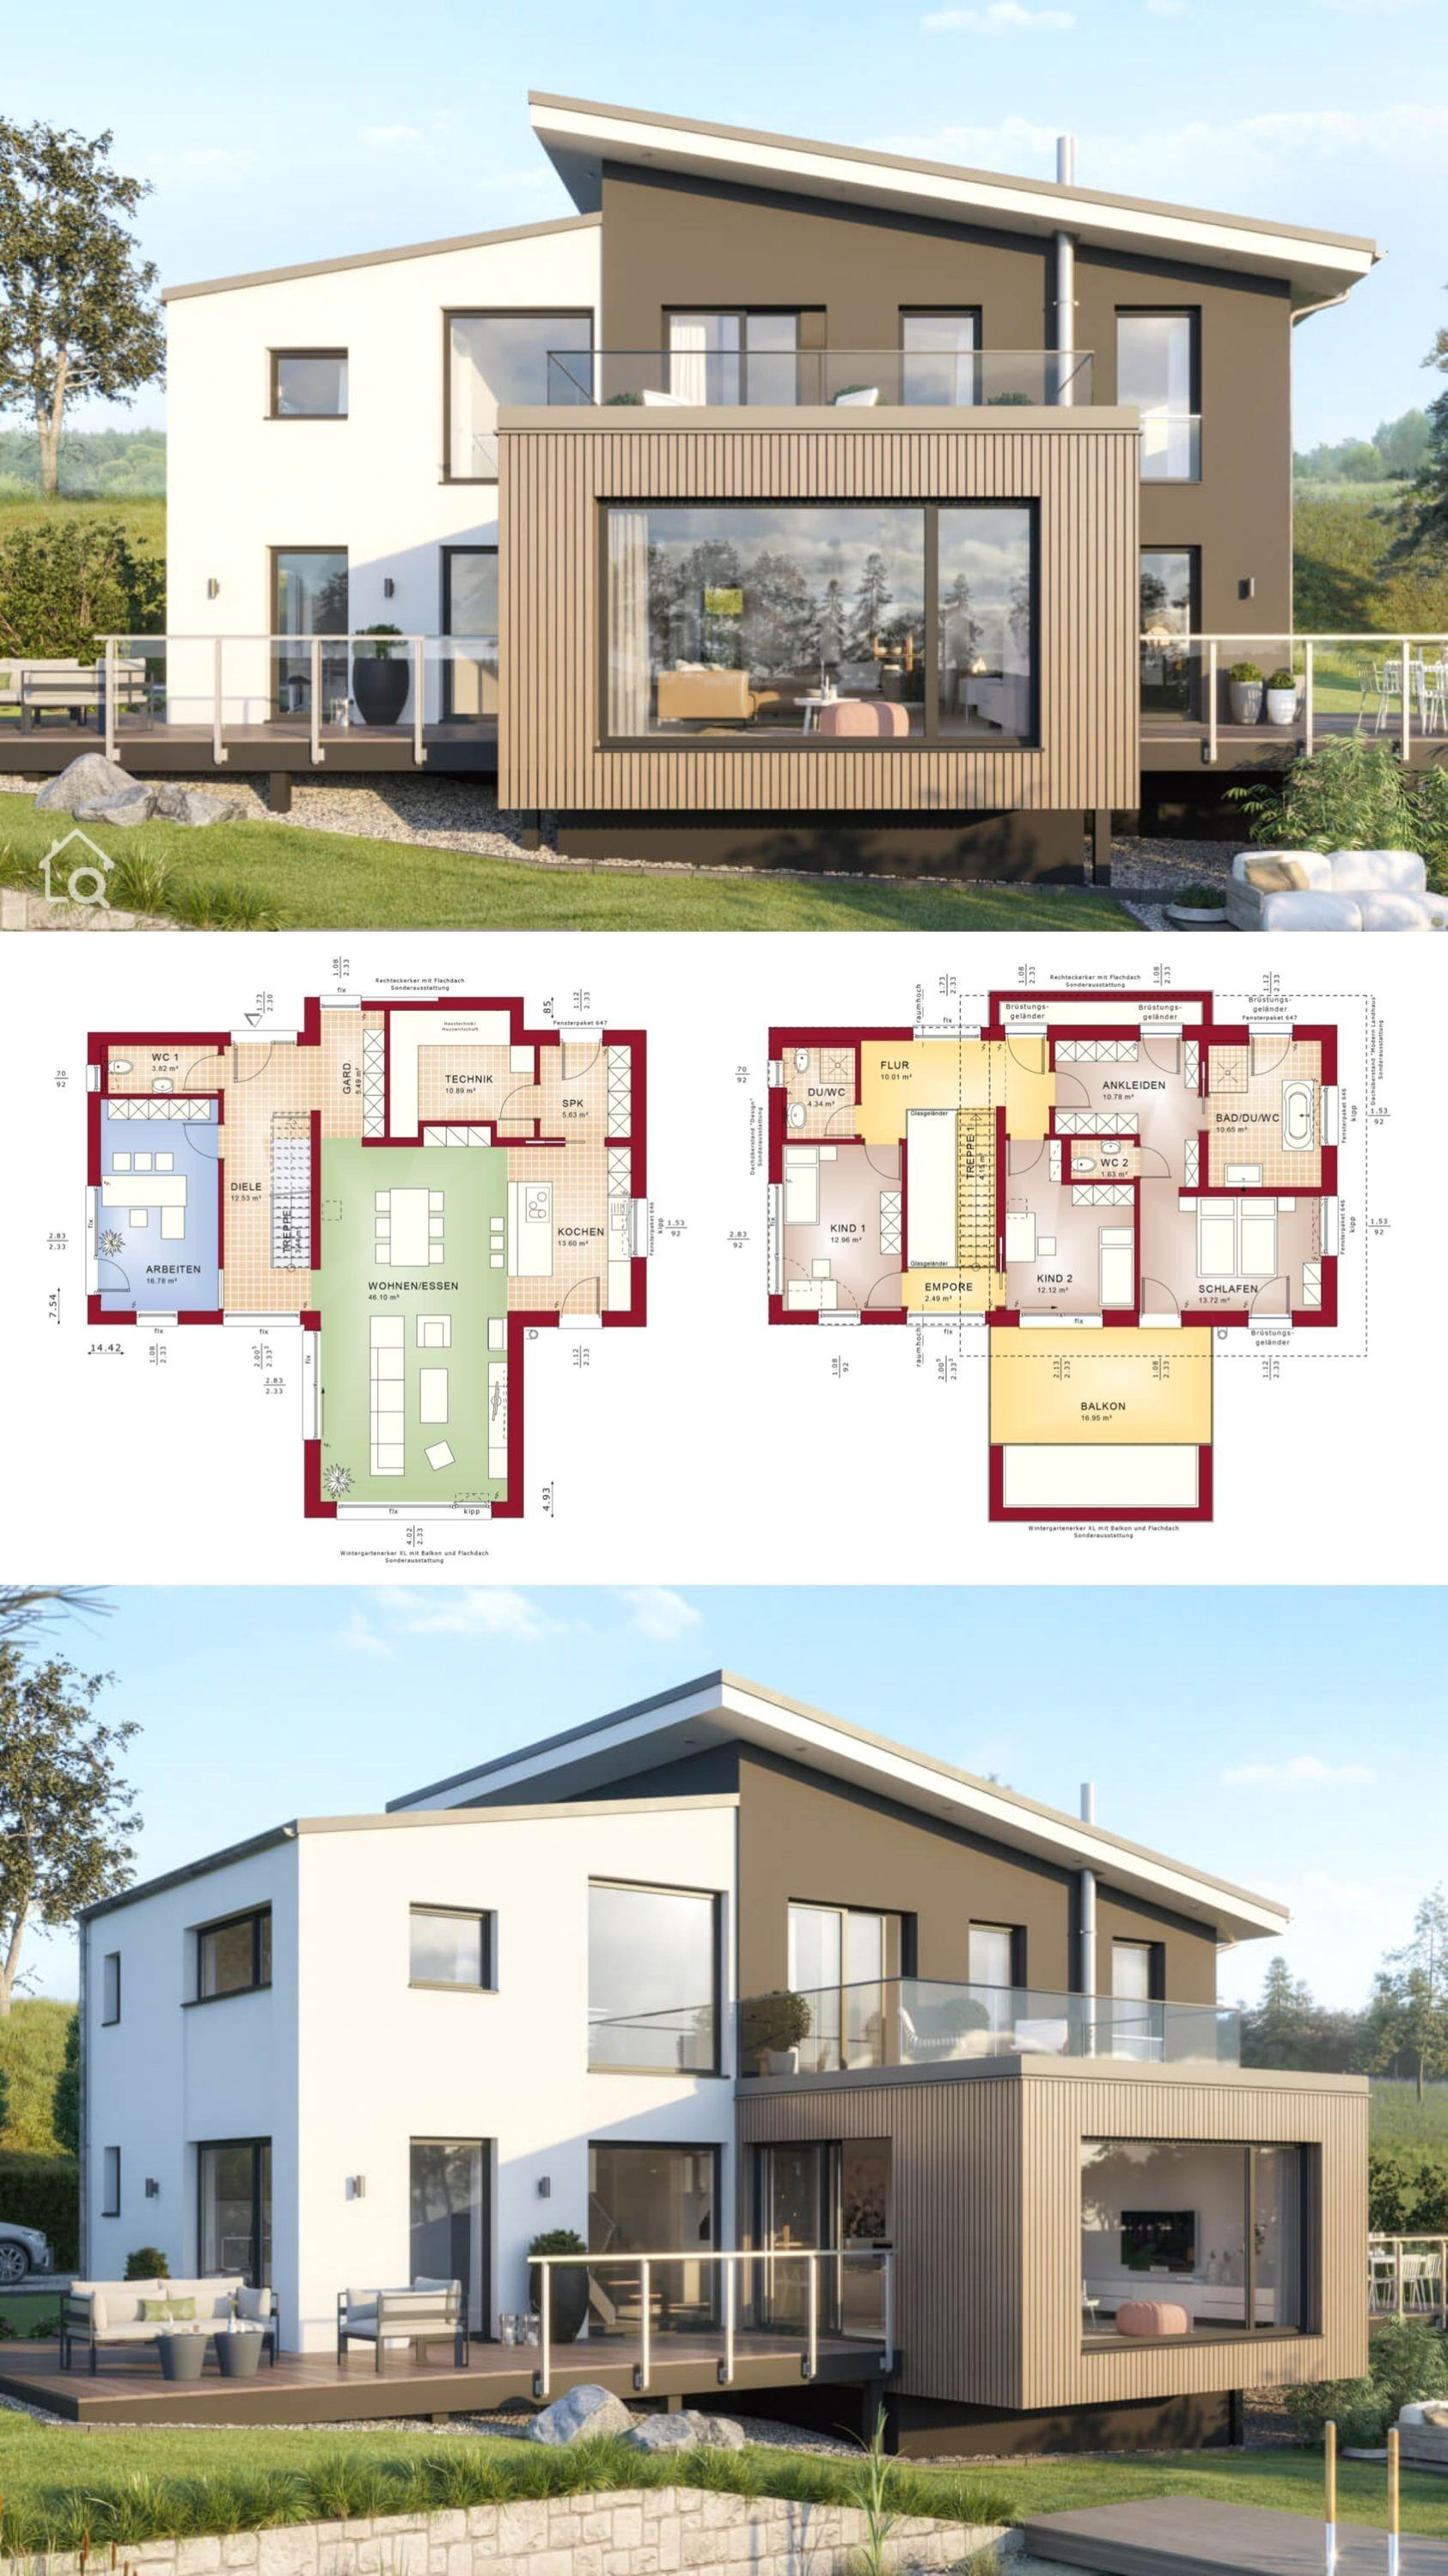 Single Family House Architecture Modern With A Lean To Roof Xl Bay Window Us Floor Plan Ideas W In 2020 Architecture House Modern Family House Modern Architecture